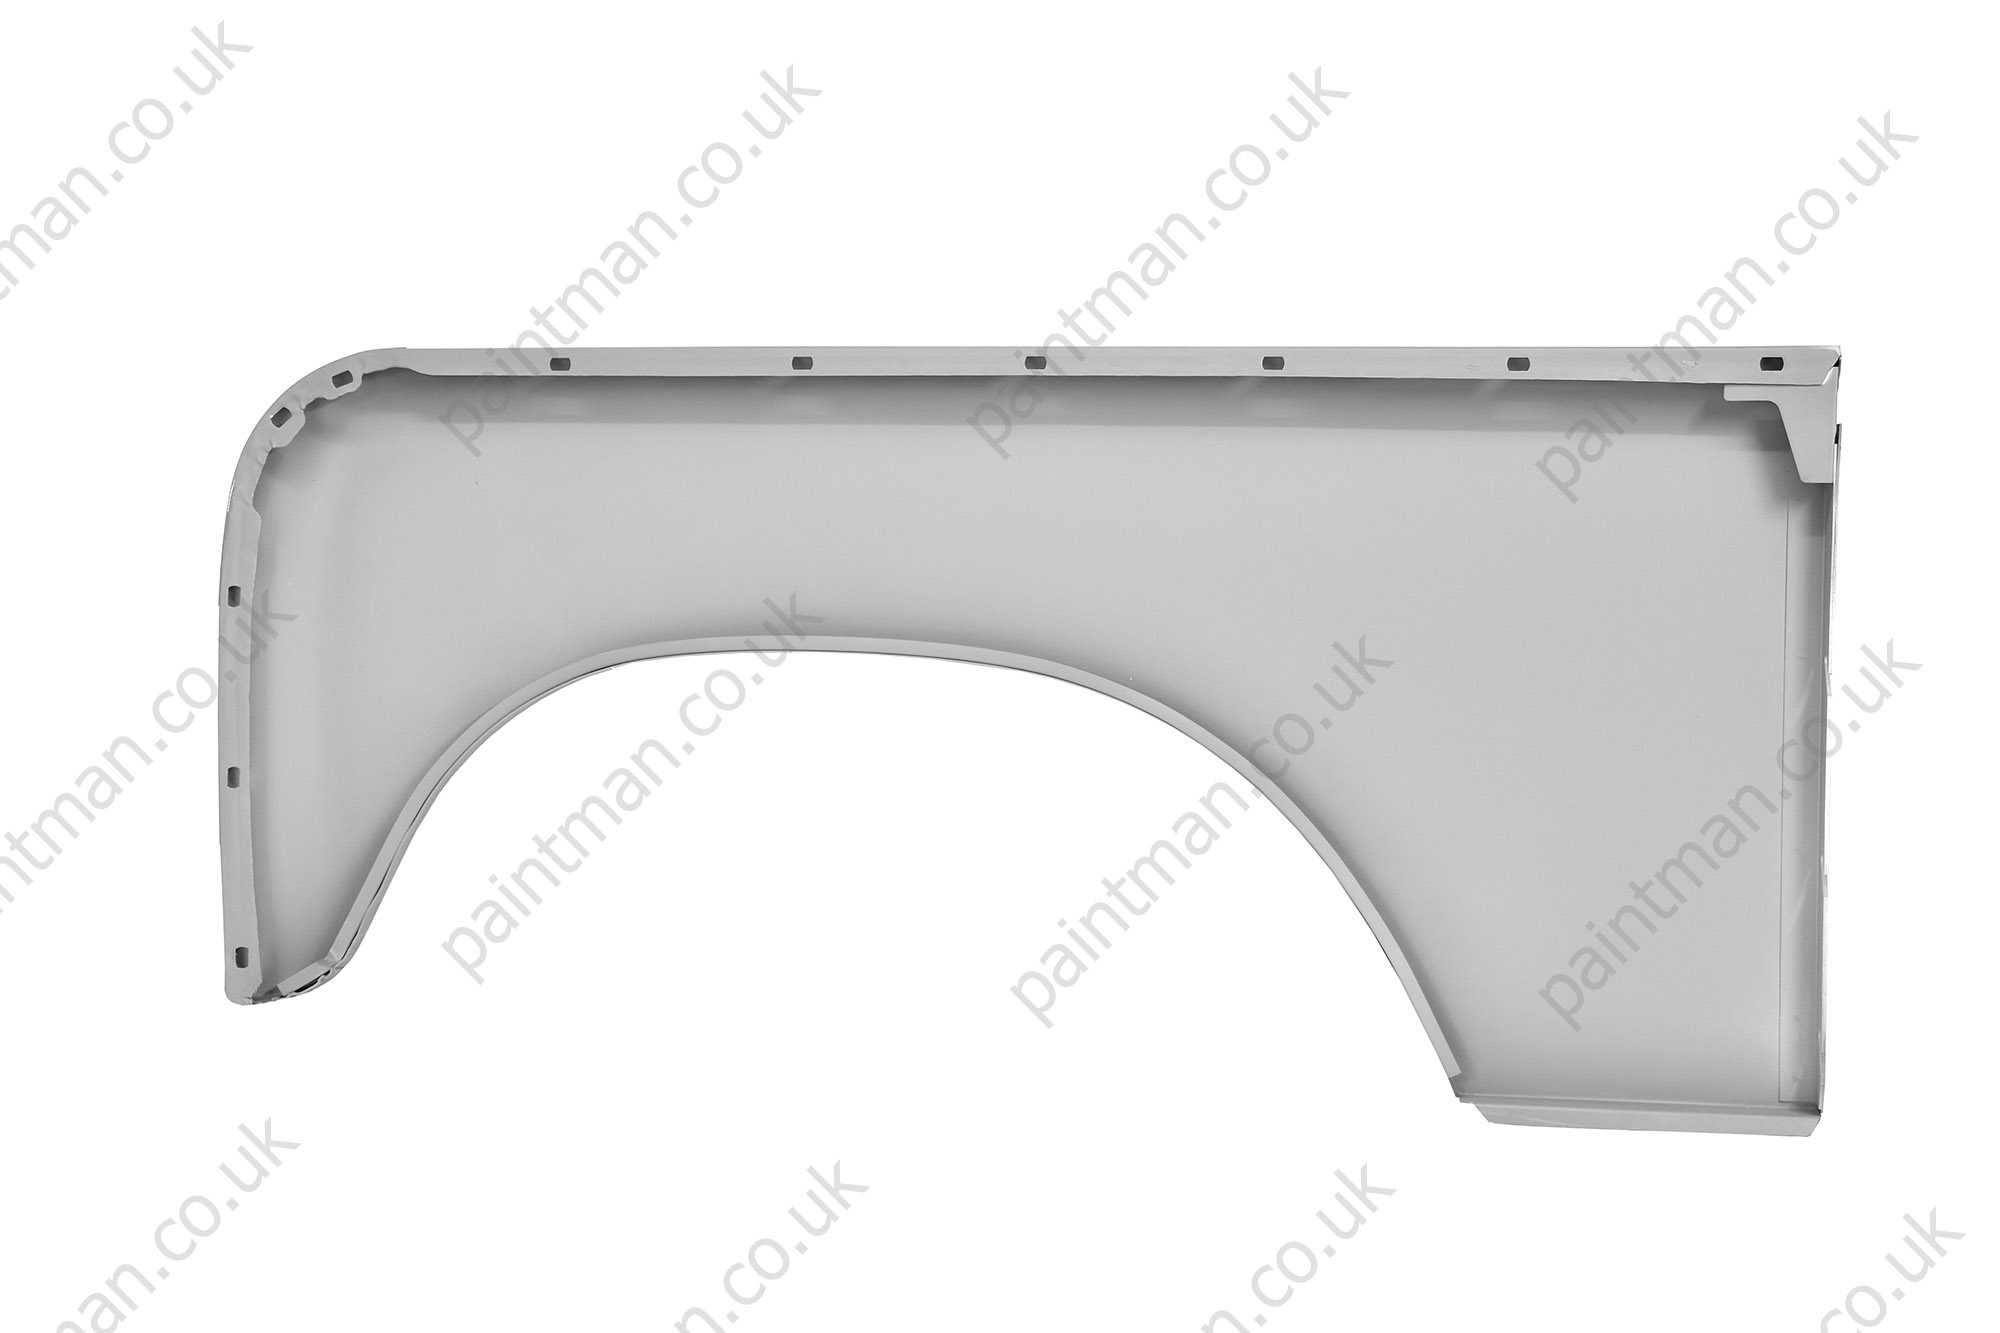 330426 Land Rover Series 2 Front Wing Outer Skin